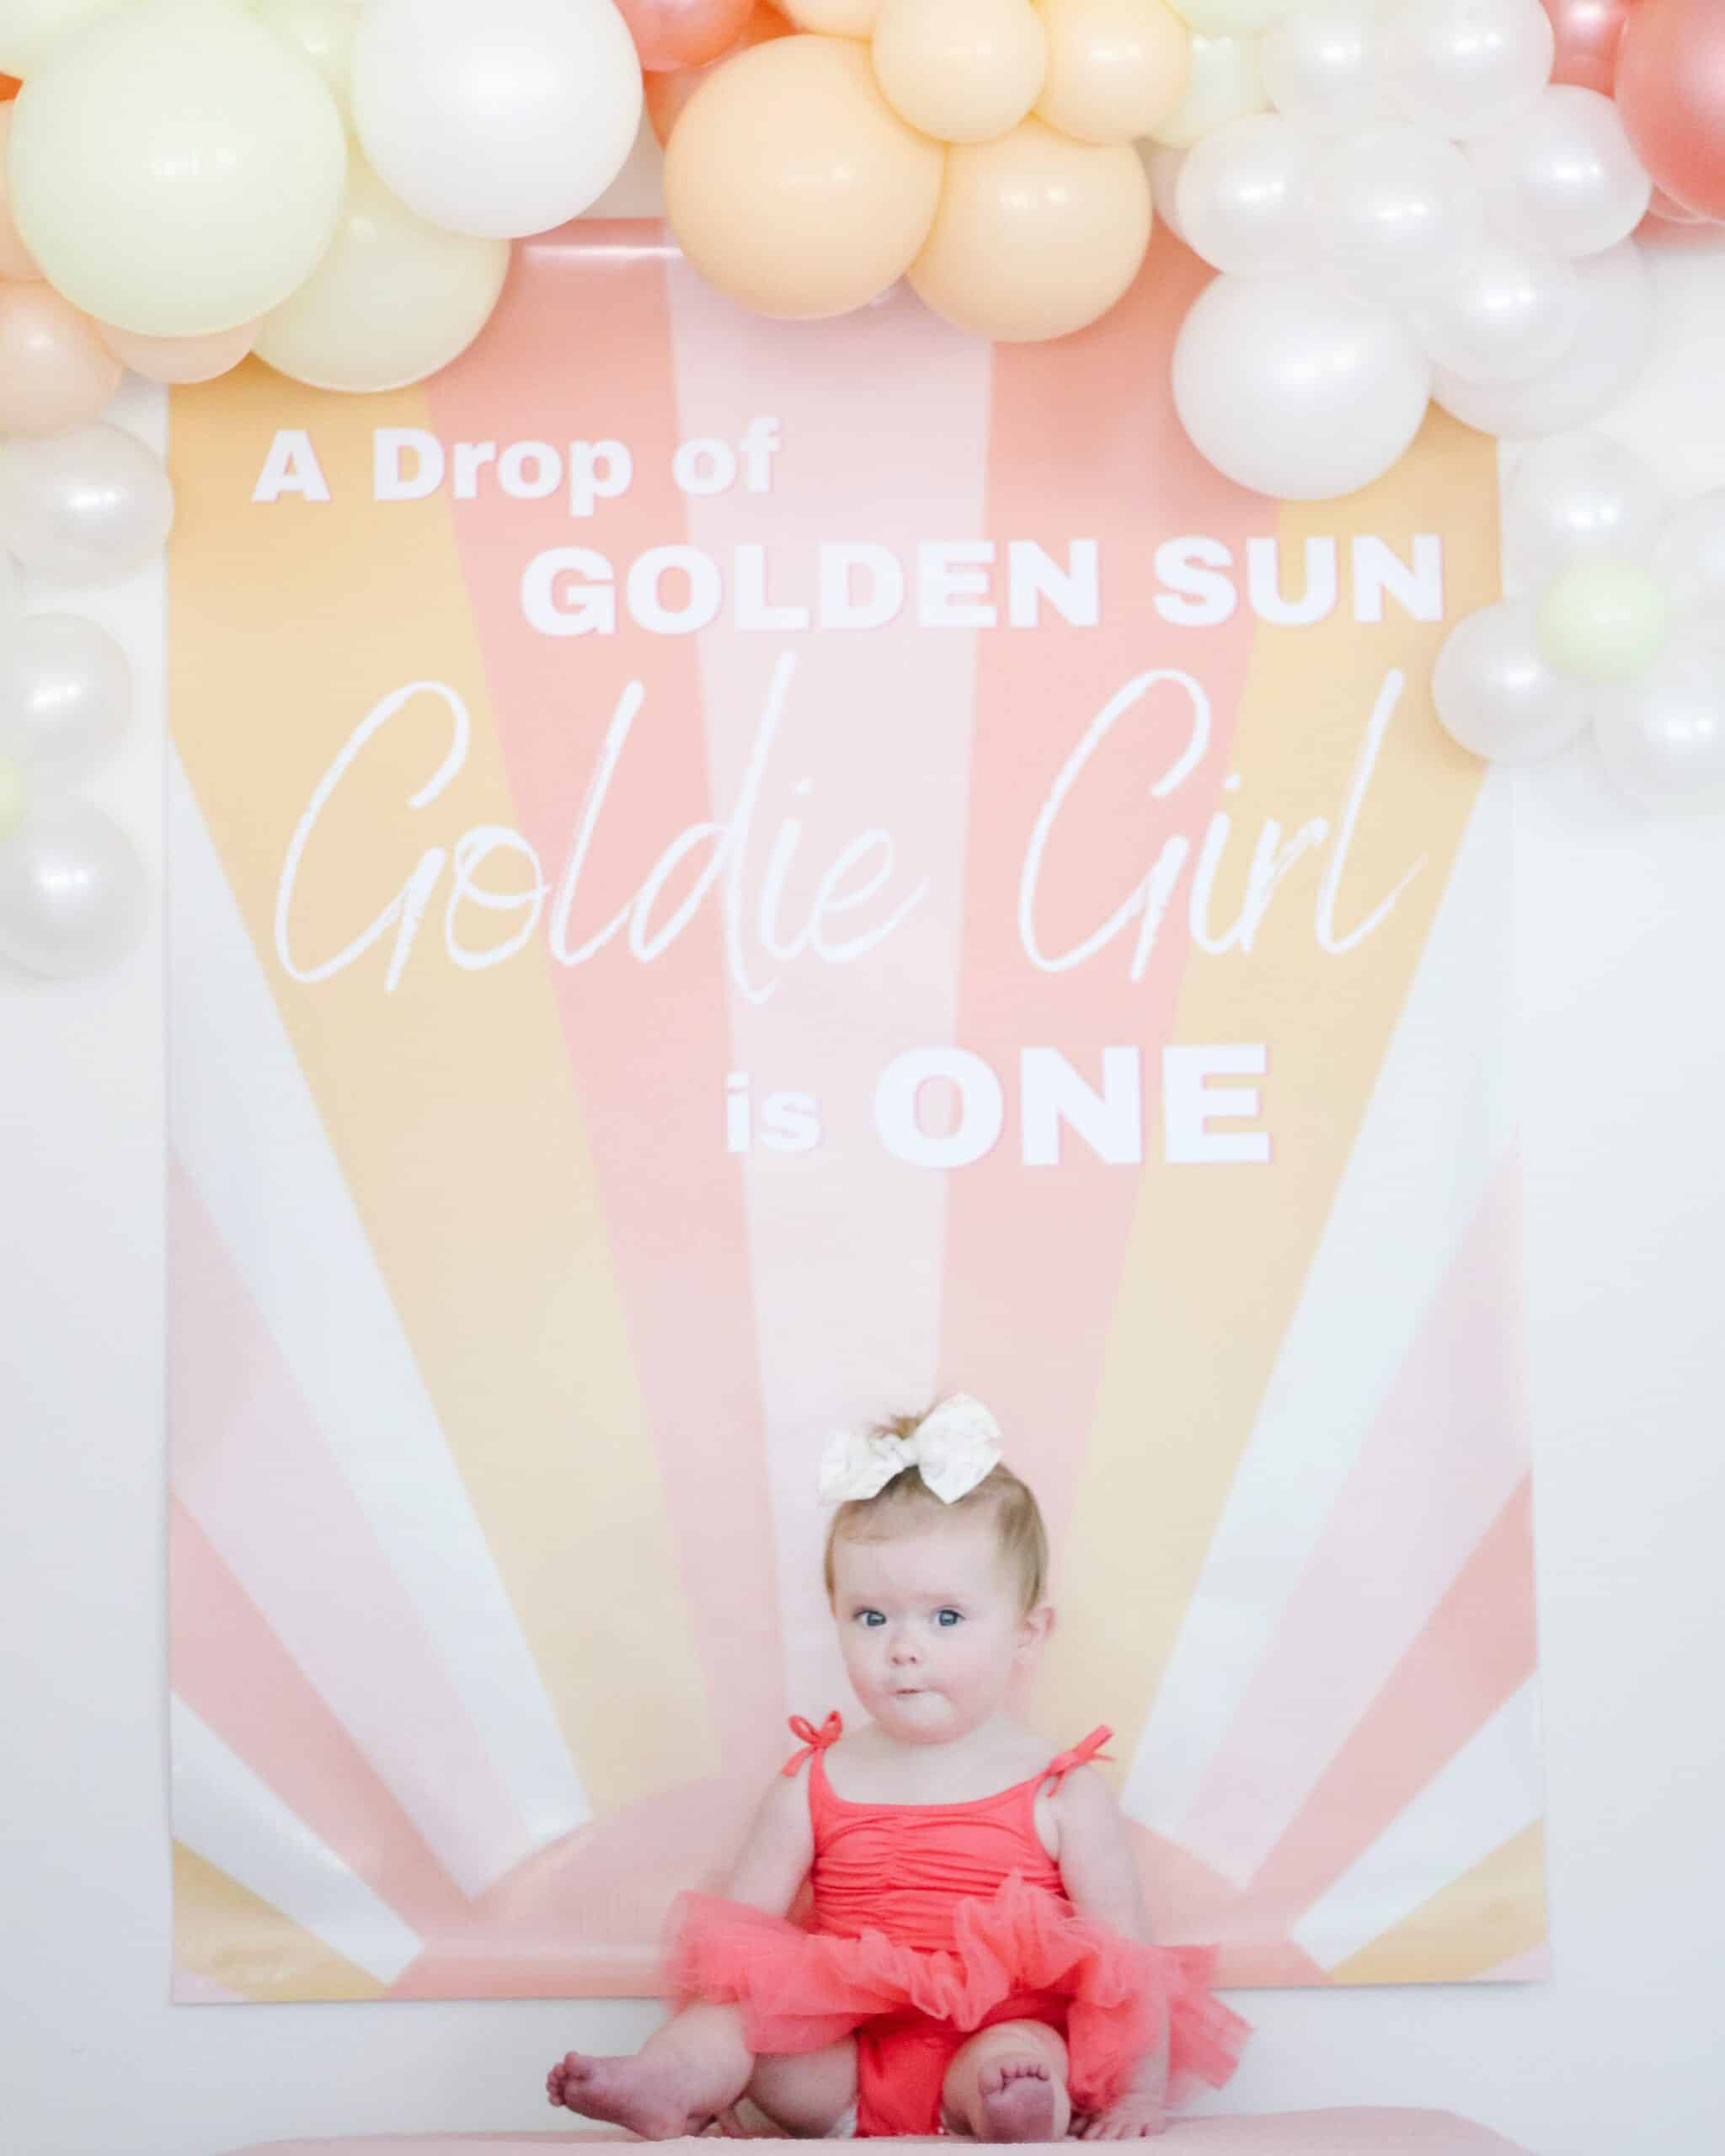 A drop of golden sun Goldie girl is One